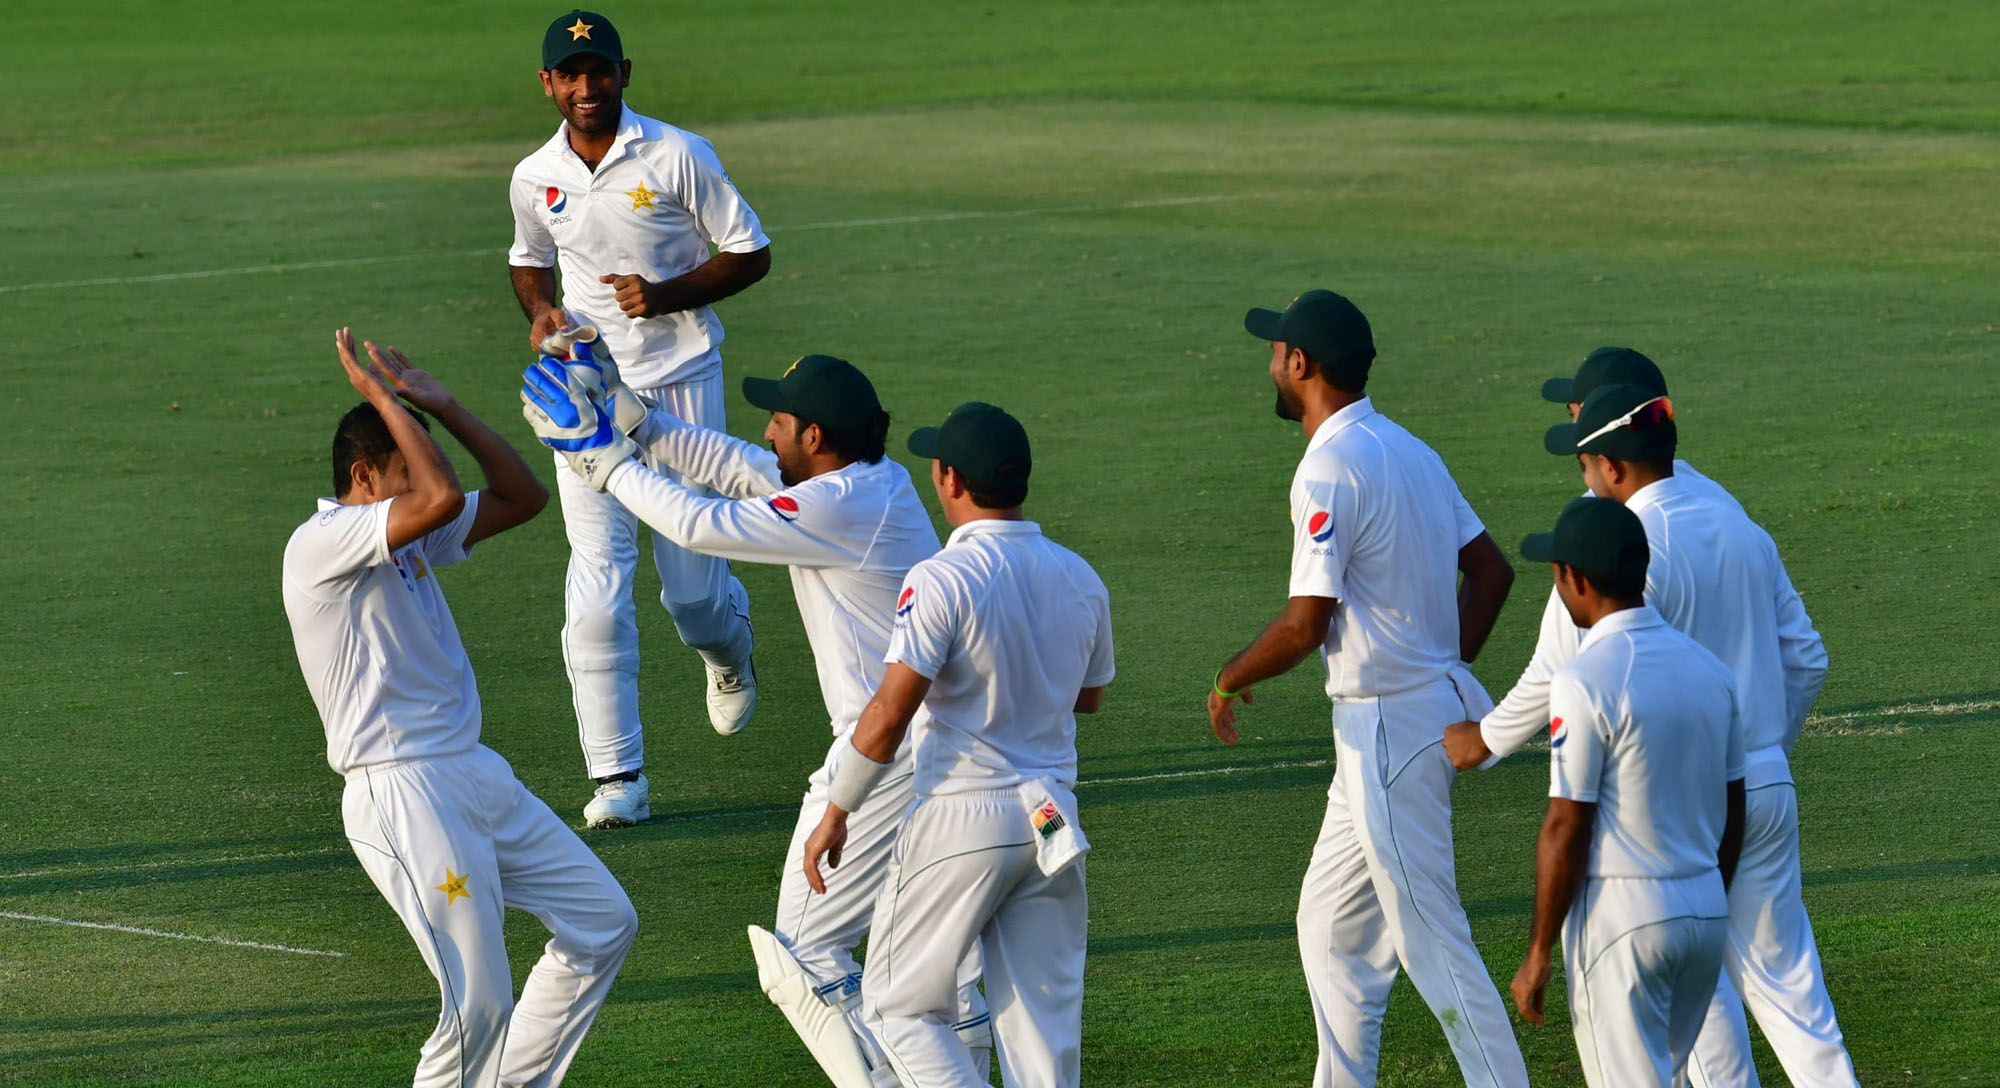 pakistan in pole position to win abu dhabi test